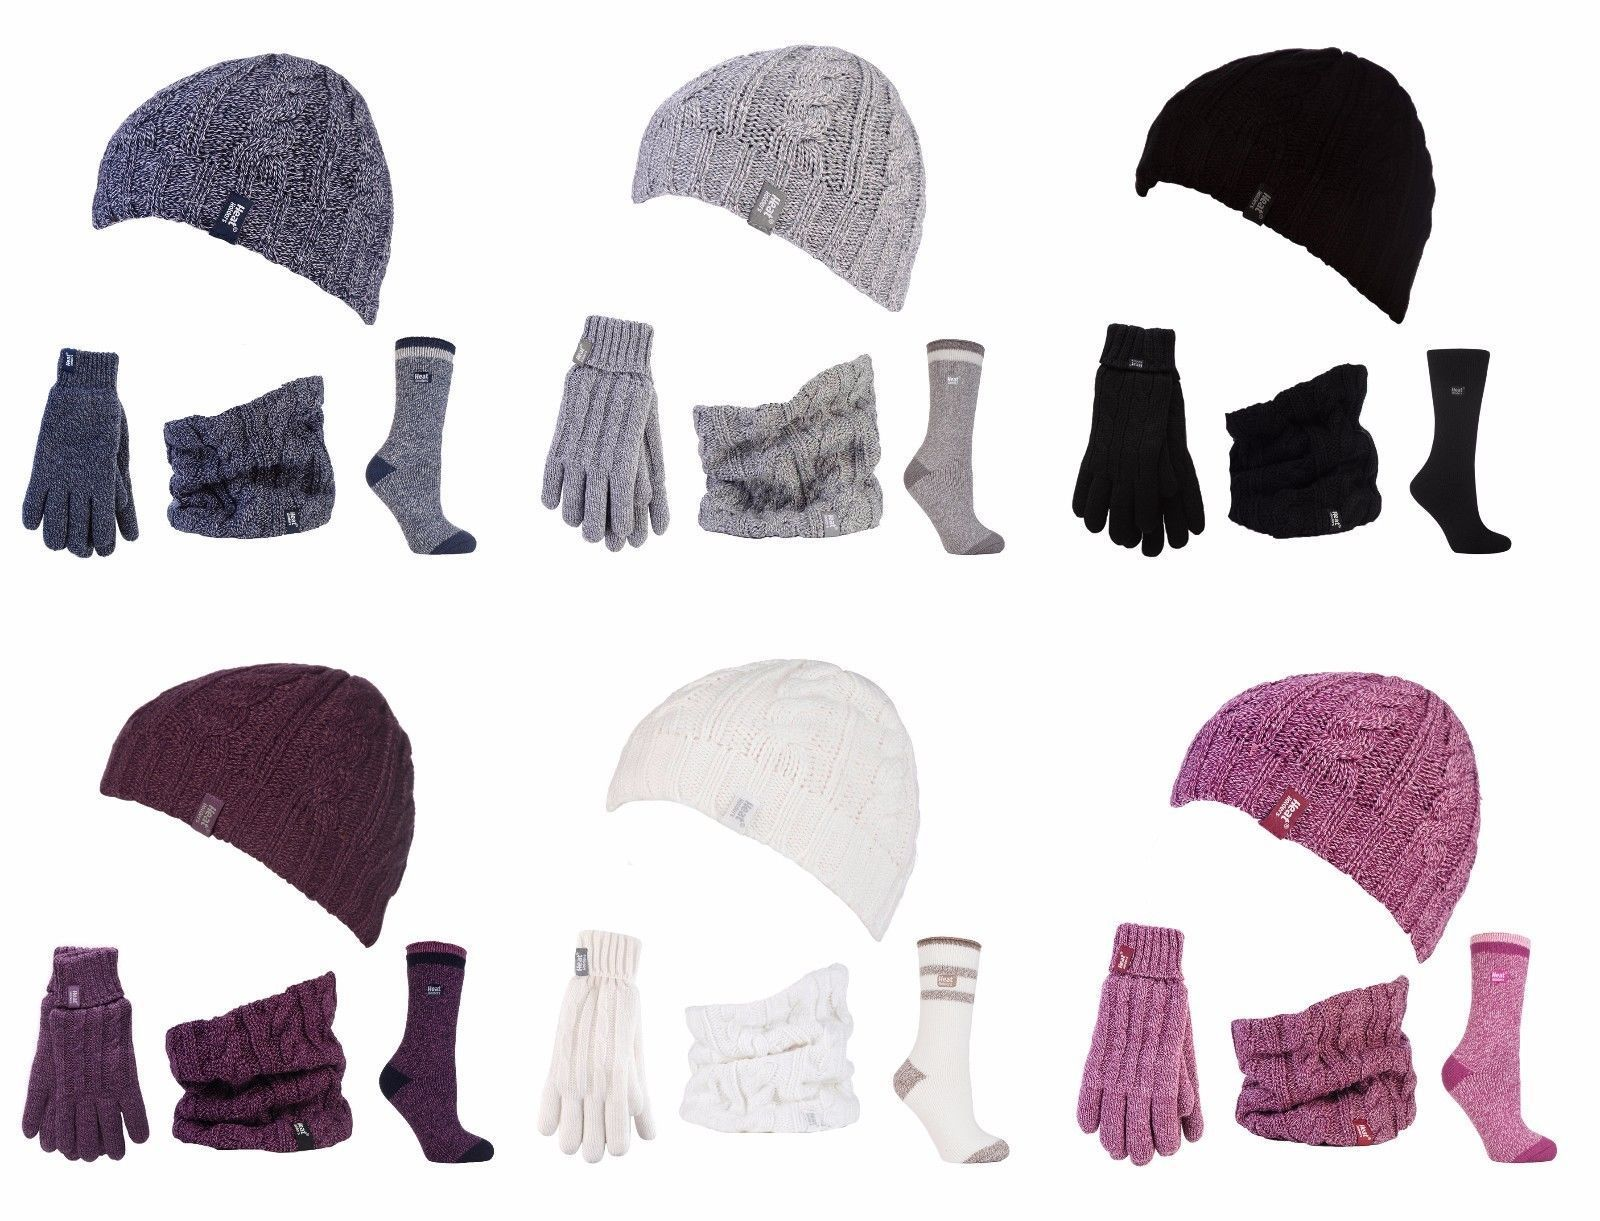 797a4fd2083 Heat Holders - Womens Knitted Thermal Hat Gloves